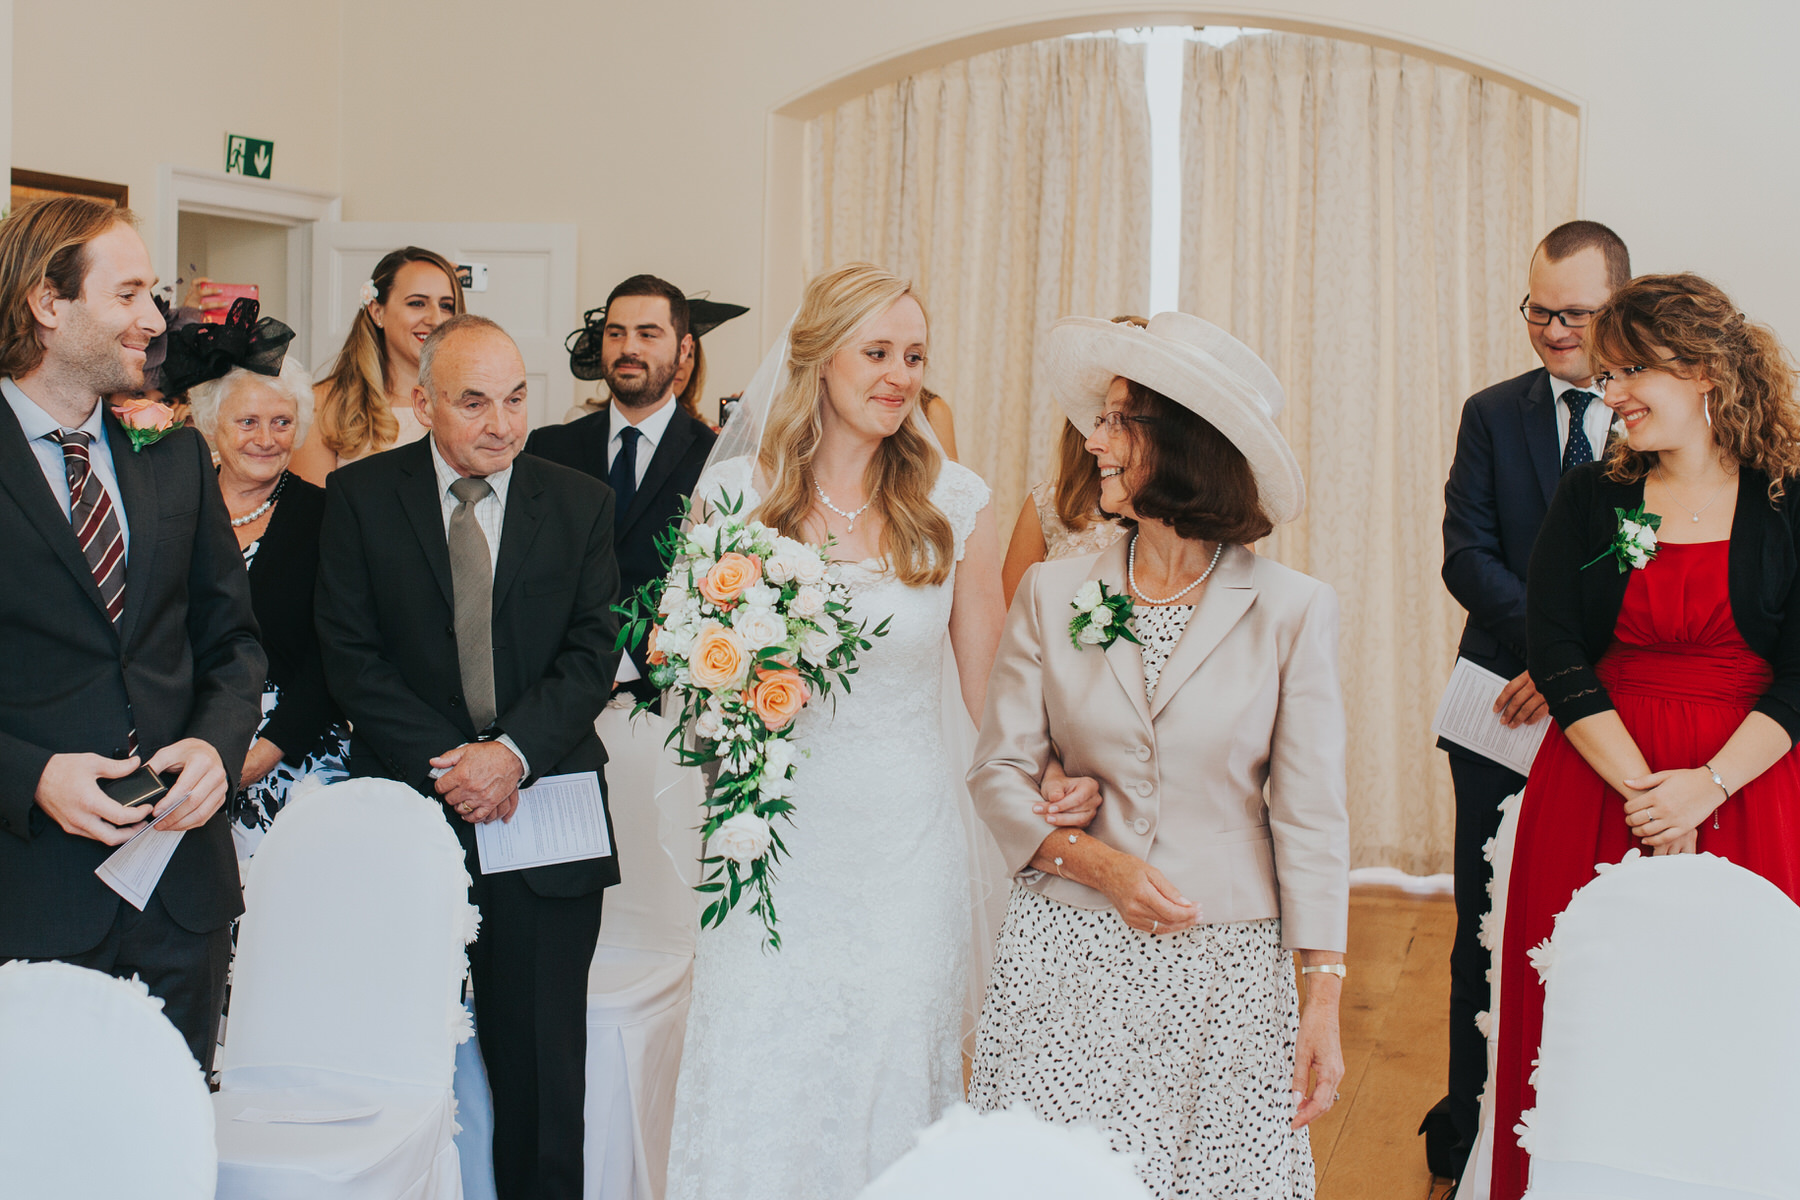 43 bride walks down aisle mother Pembroke Lodge wedding photographer.jpg